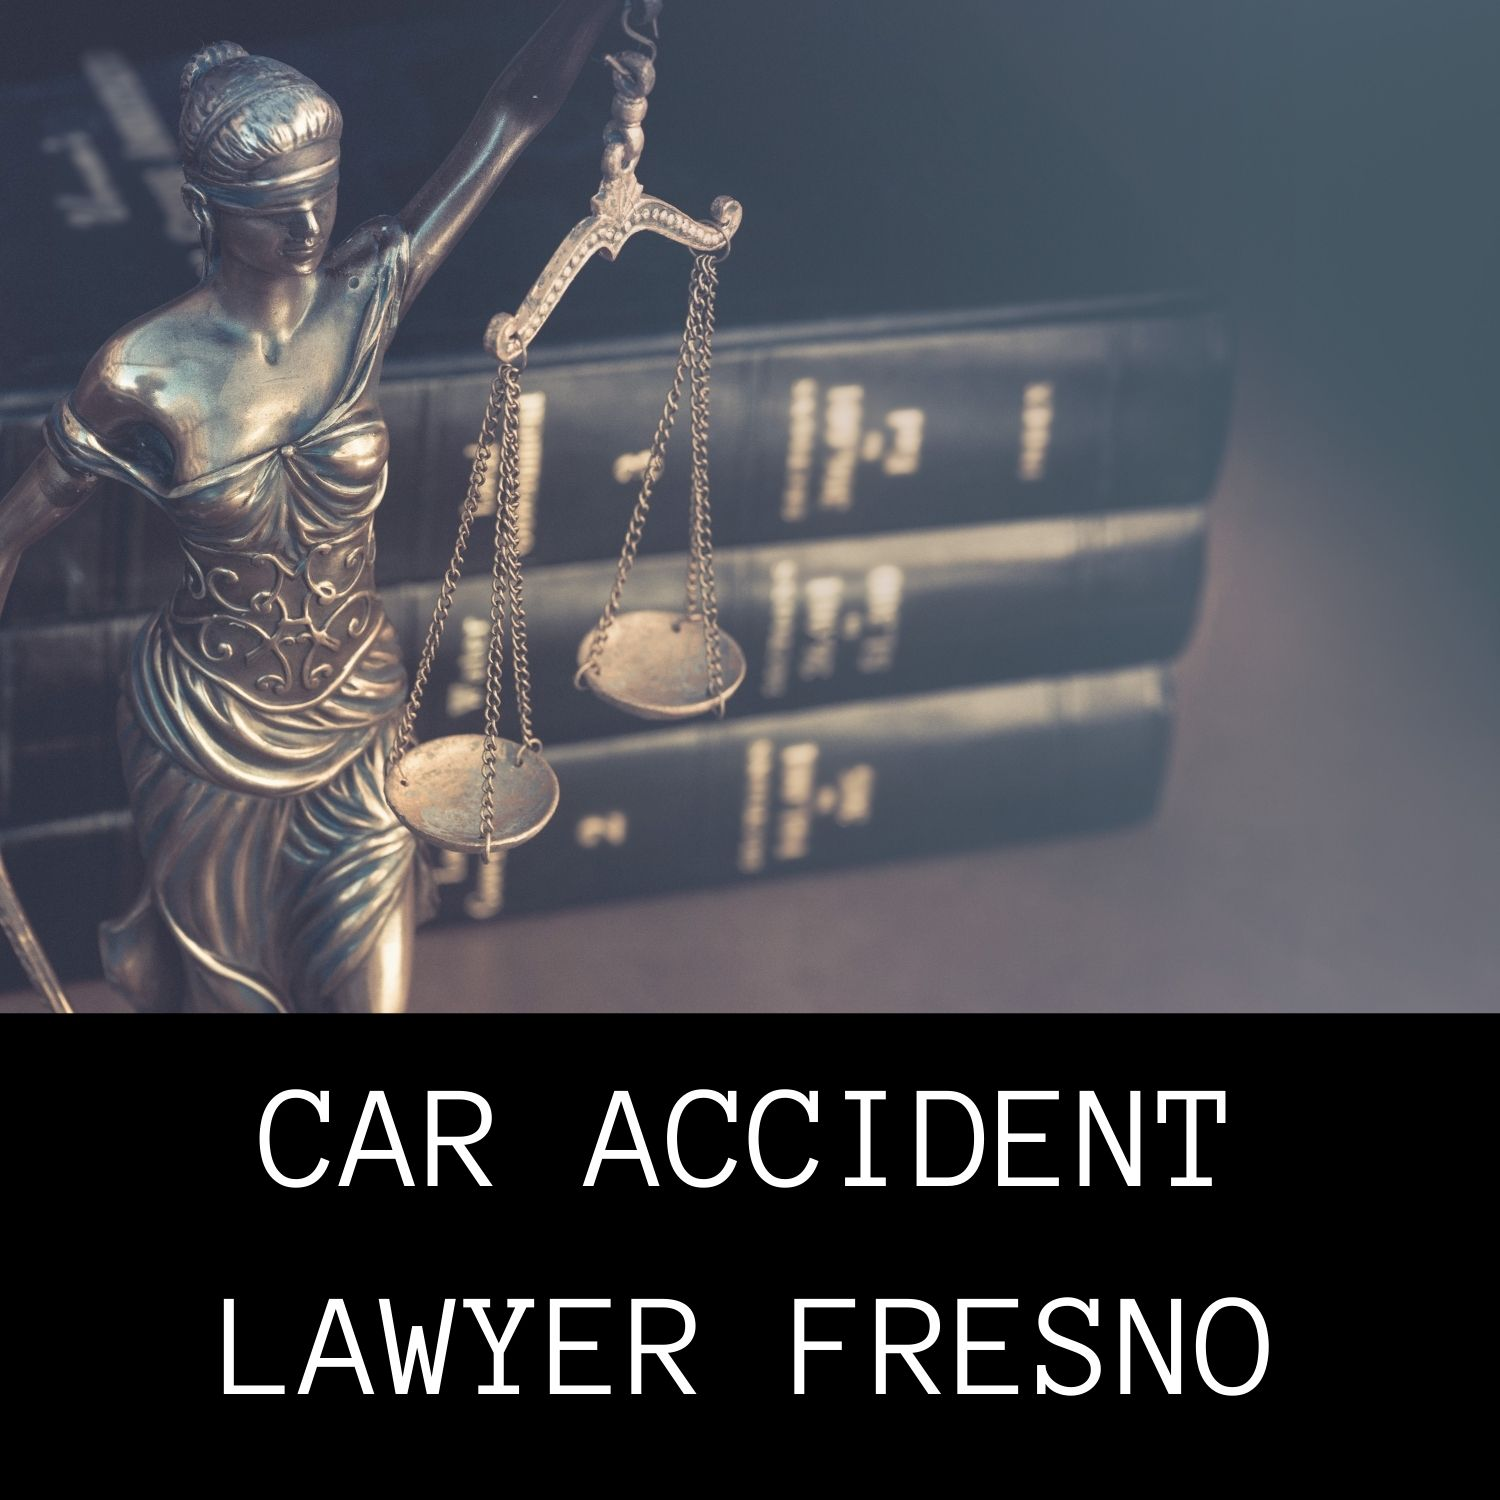 The Only Guide for Injury Law Firm Fresno